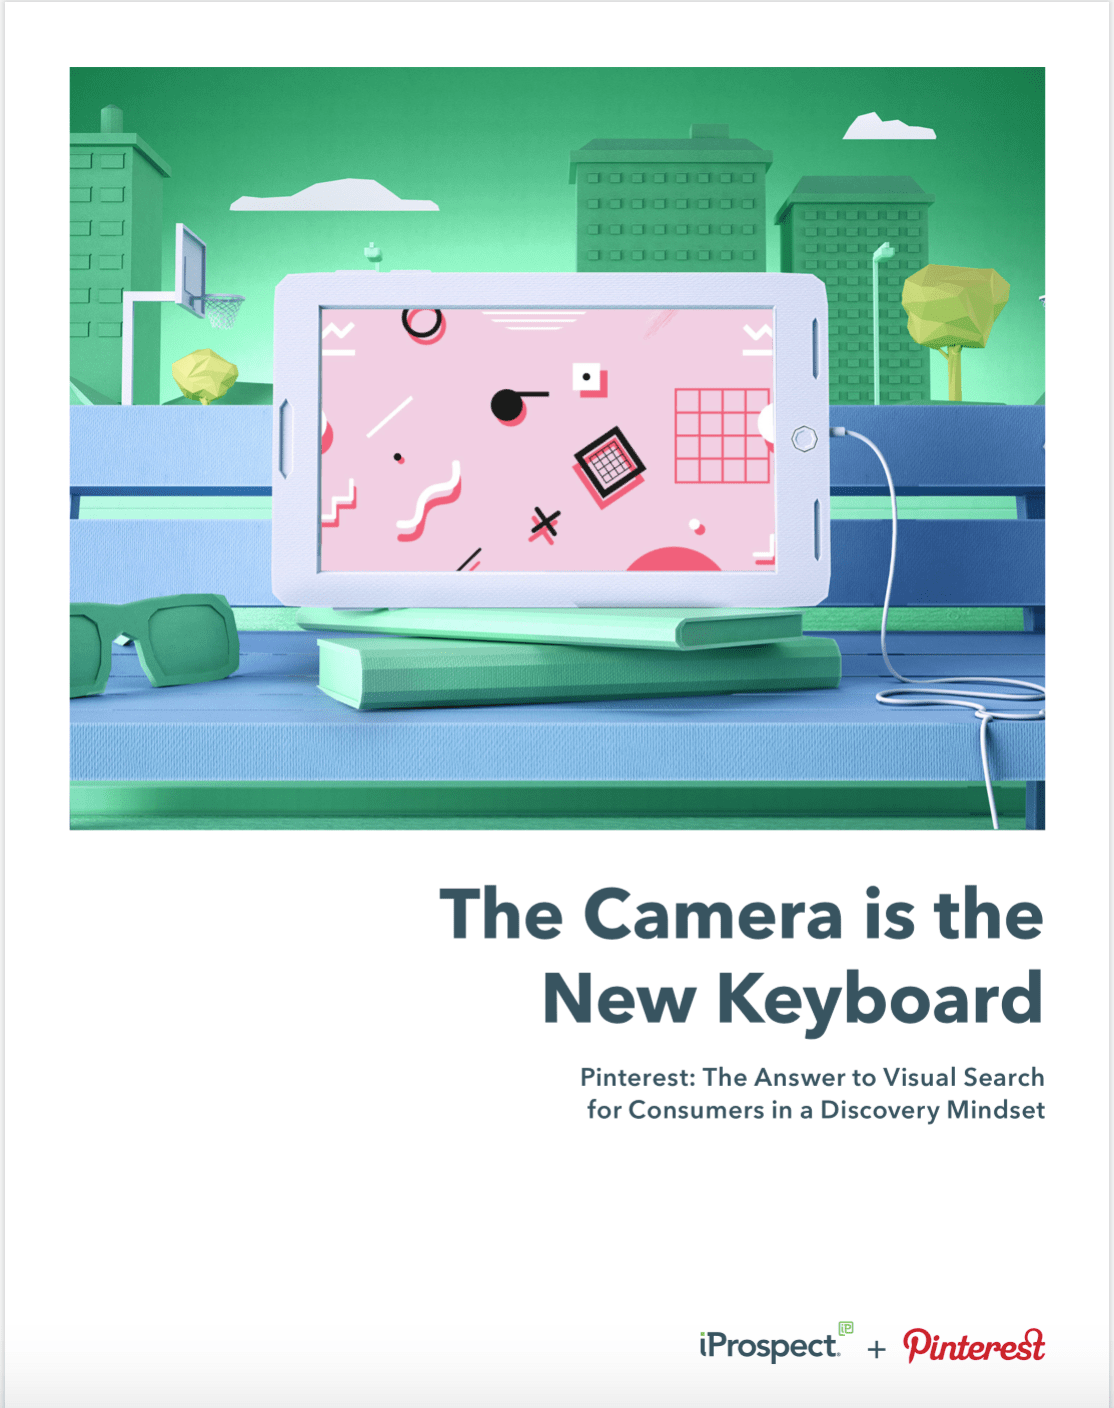 The Camera is the New Keyboard